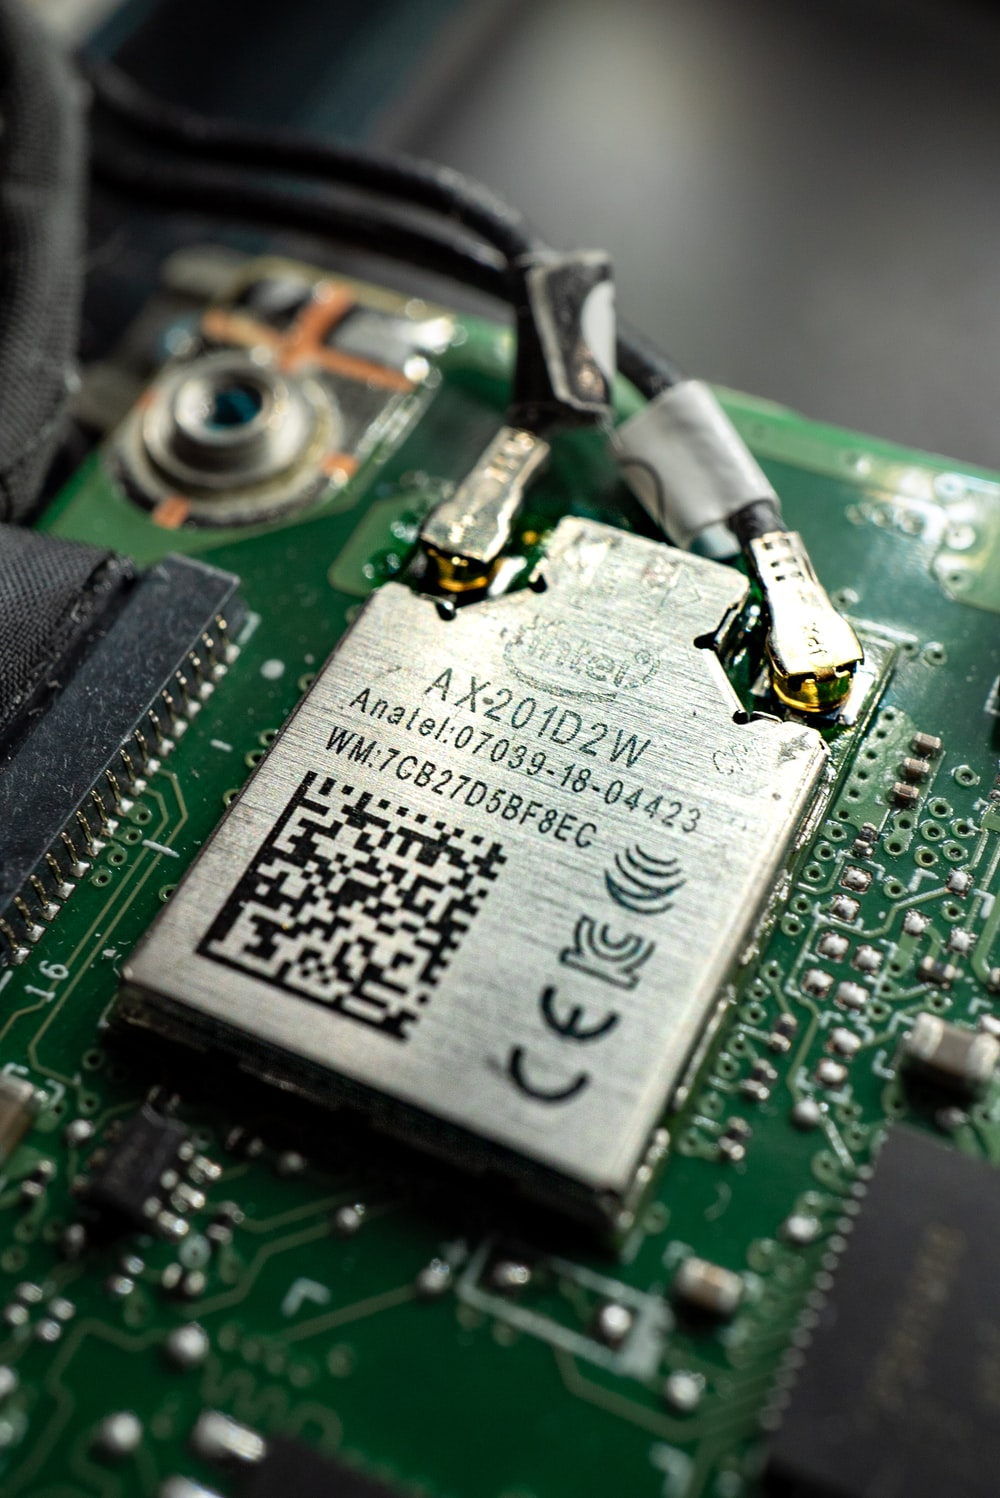 green and black circuit board